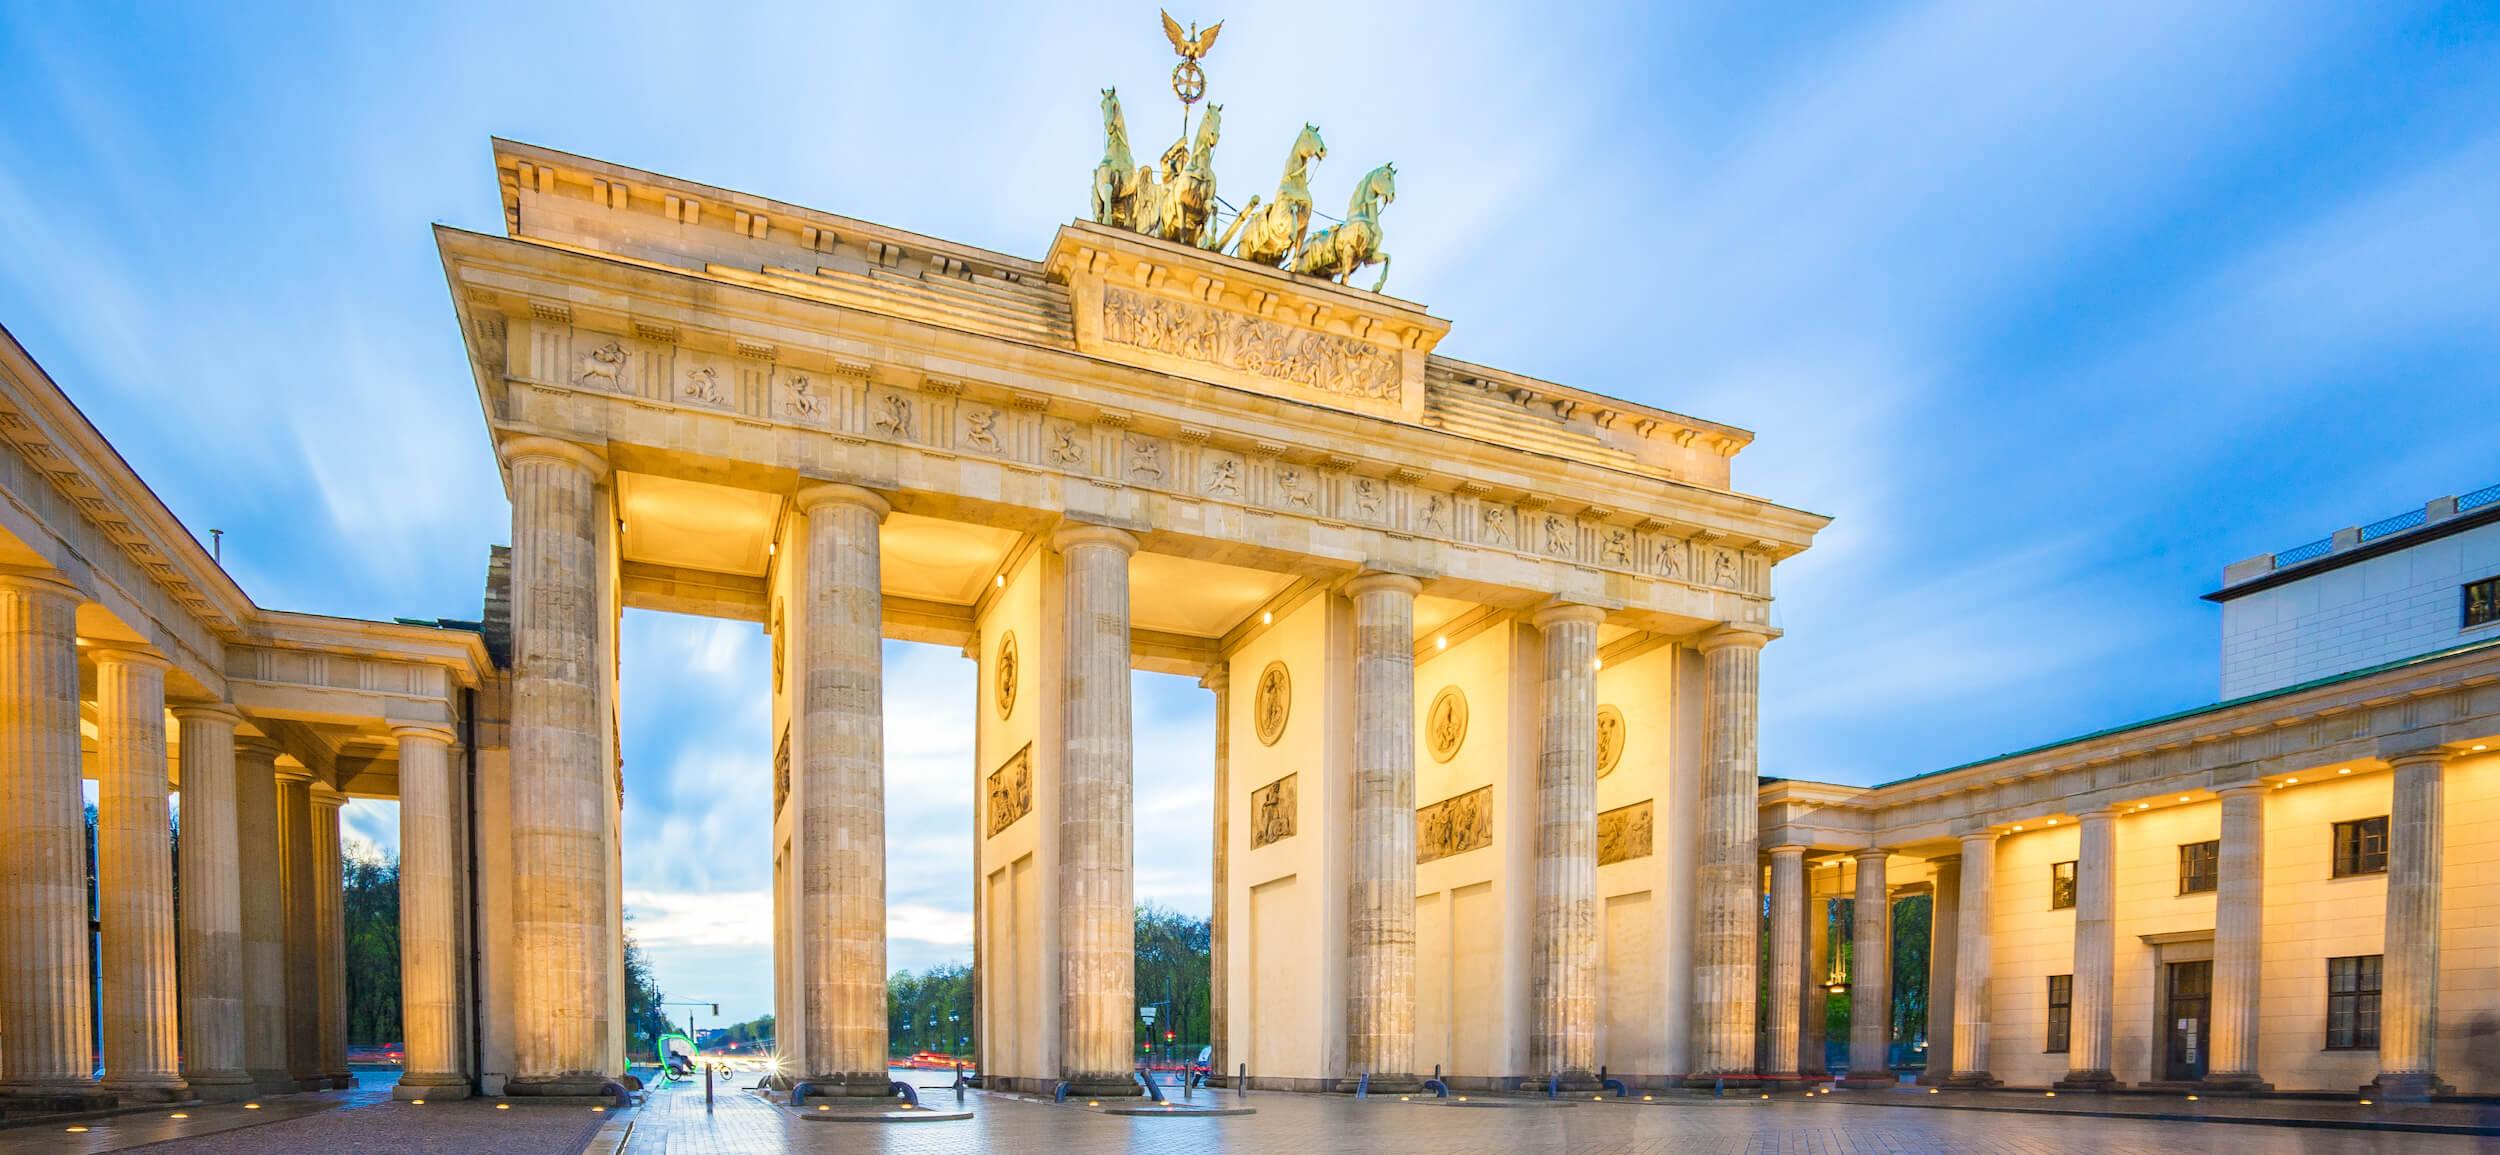 What to do during a stay in Berlin?